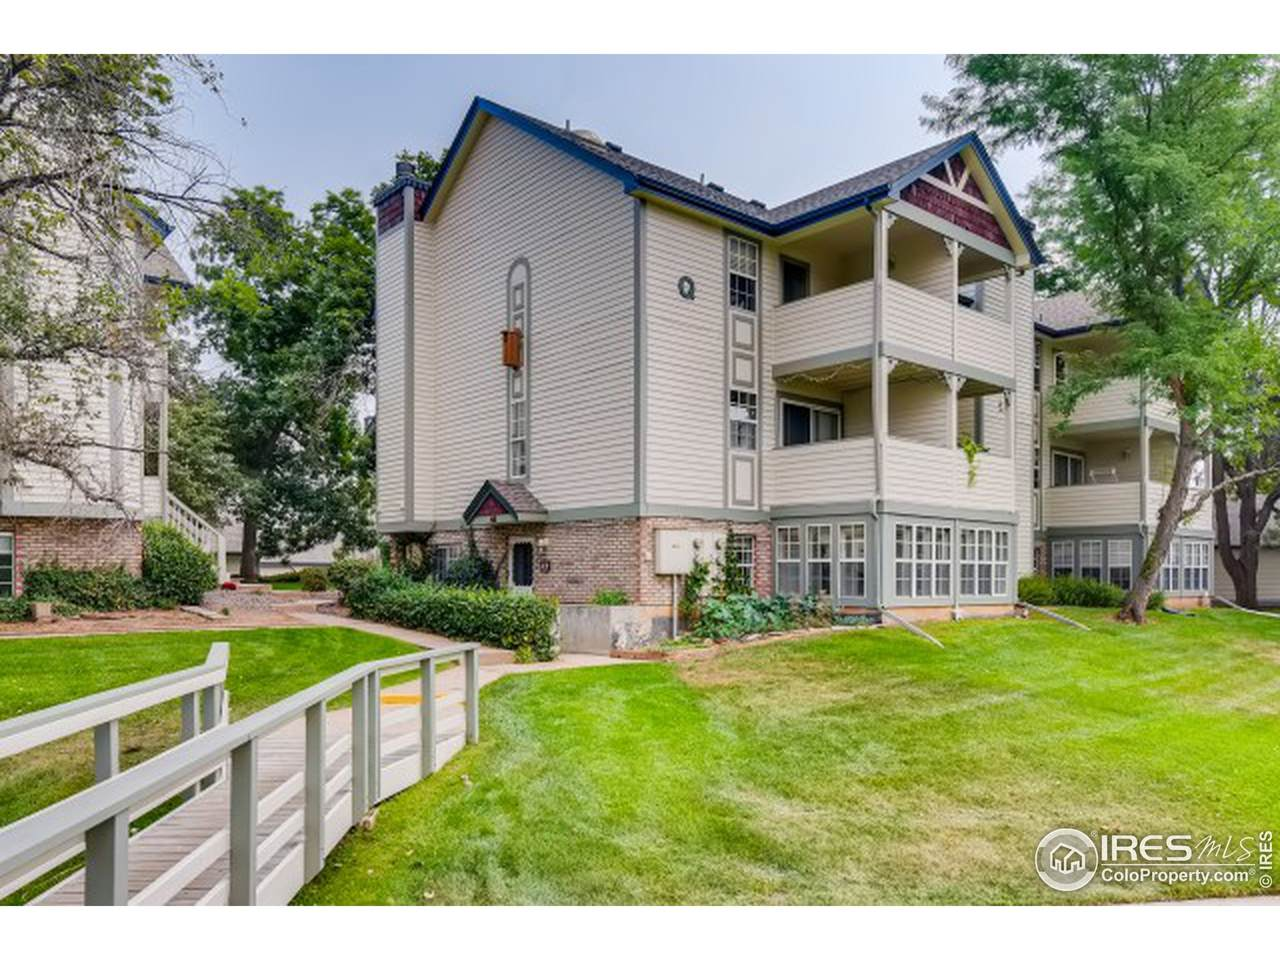 2828 Silverplume Dr - Photo 1